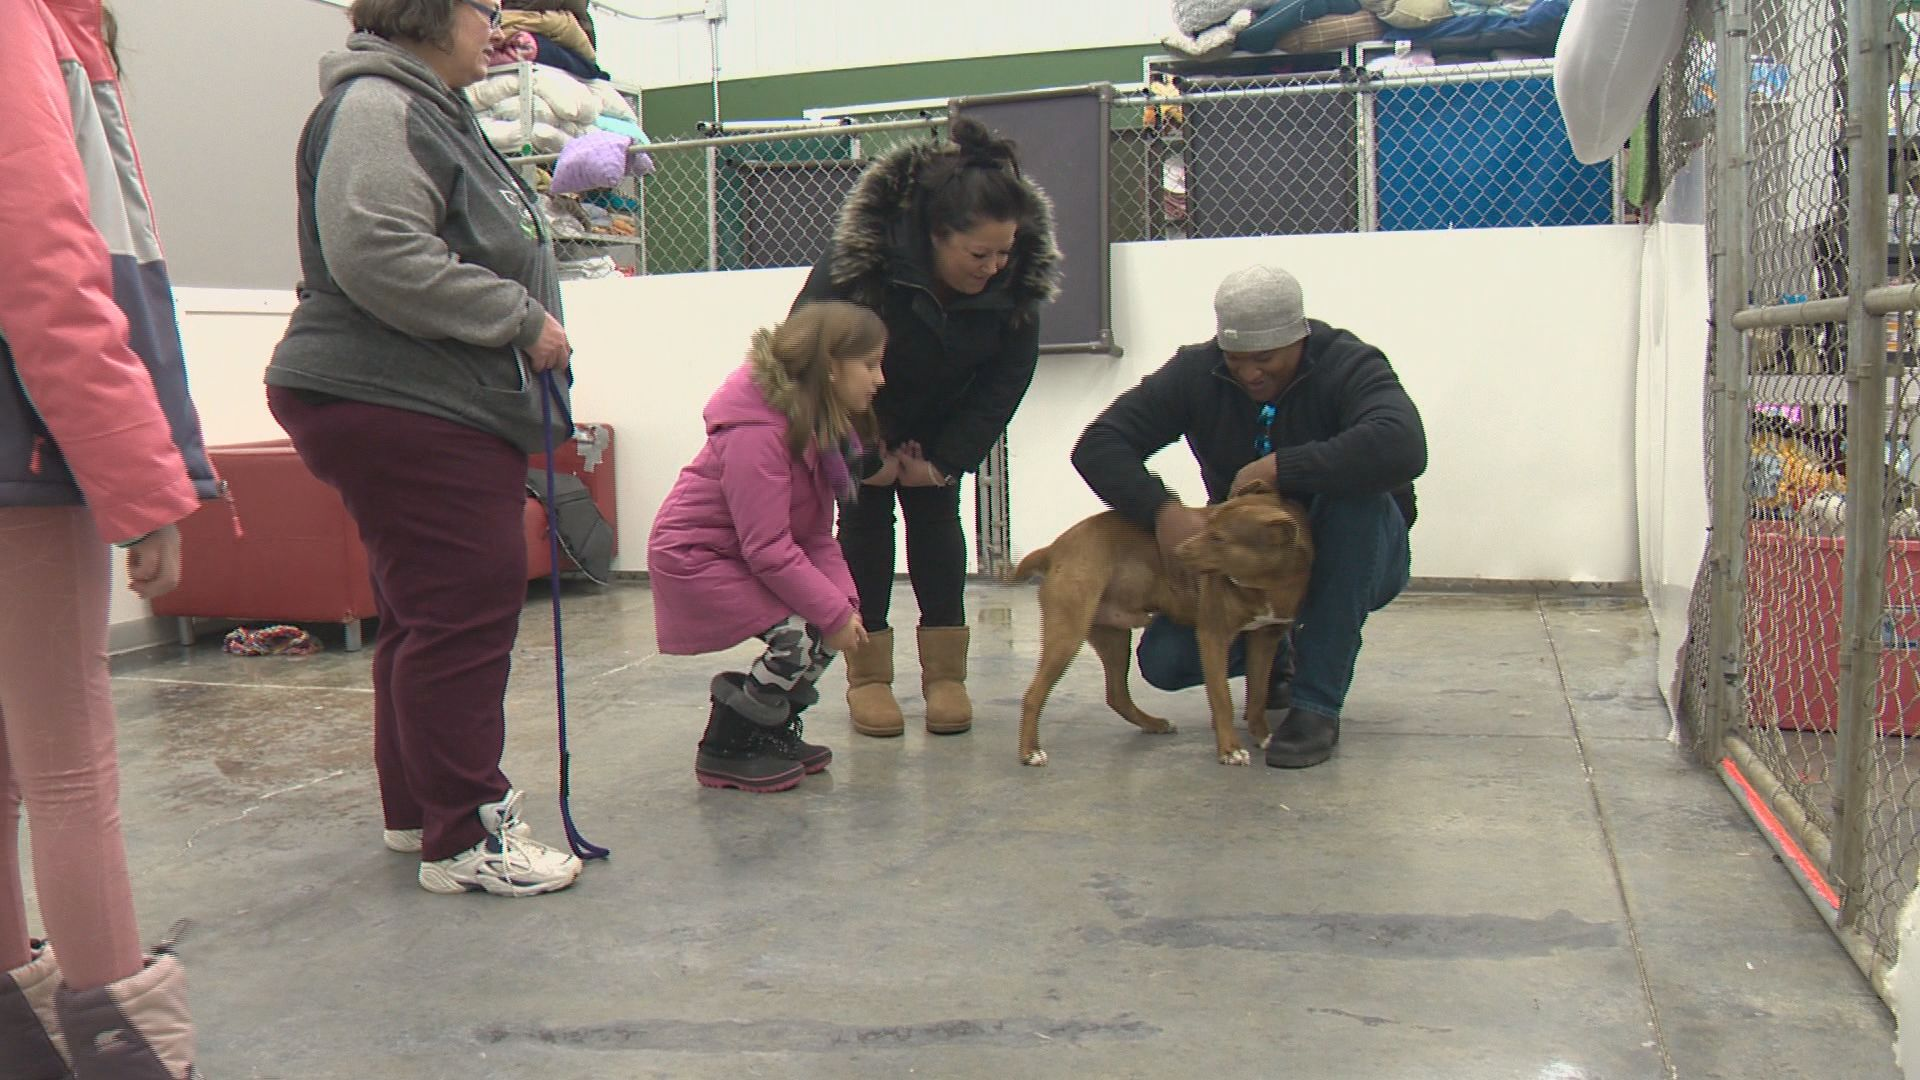 Alberta animal shelter rescues 73 dogs from the cold